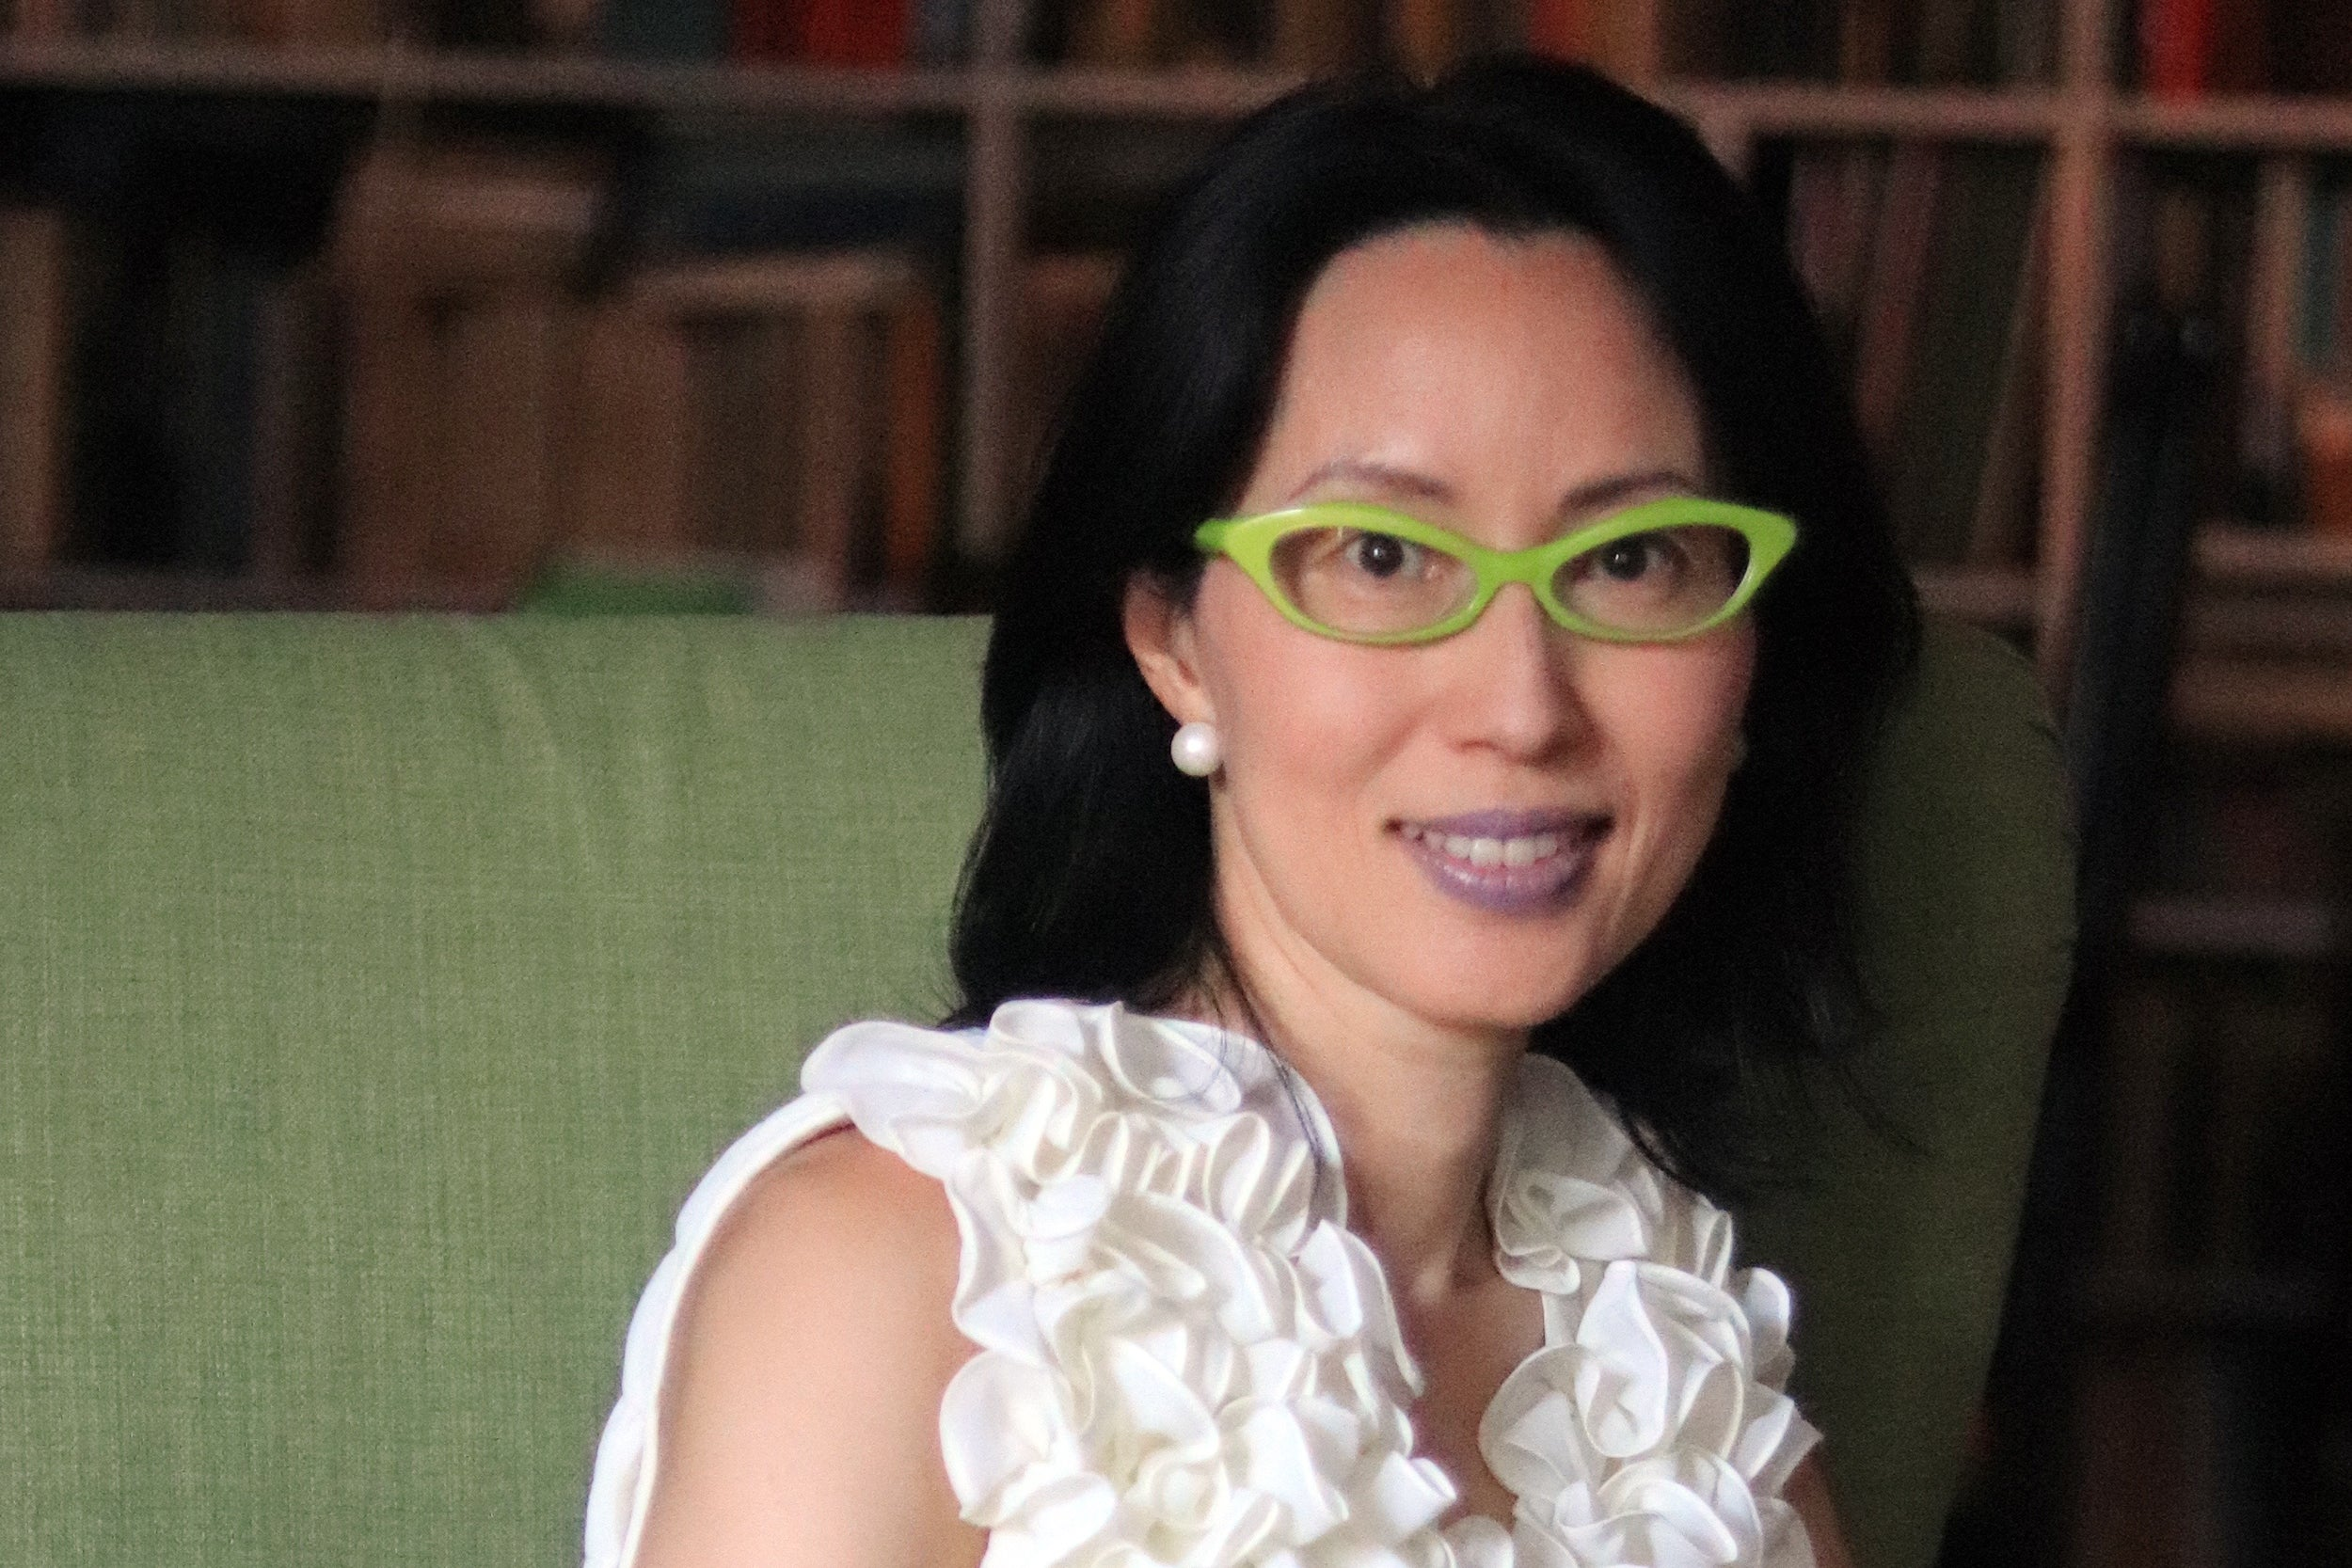 When Soyoung Lee takes the reins as the Harvard Art Museums' chief curator in September, she will be joining the institution at a vibrant time, with some goals already clear.